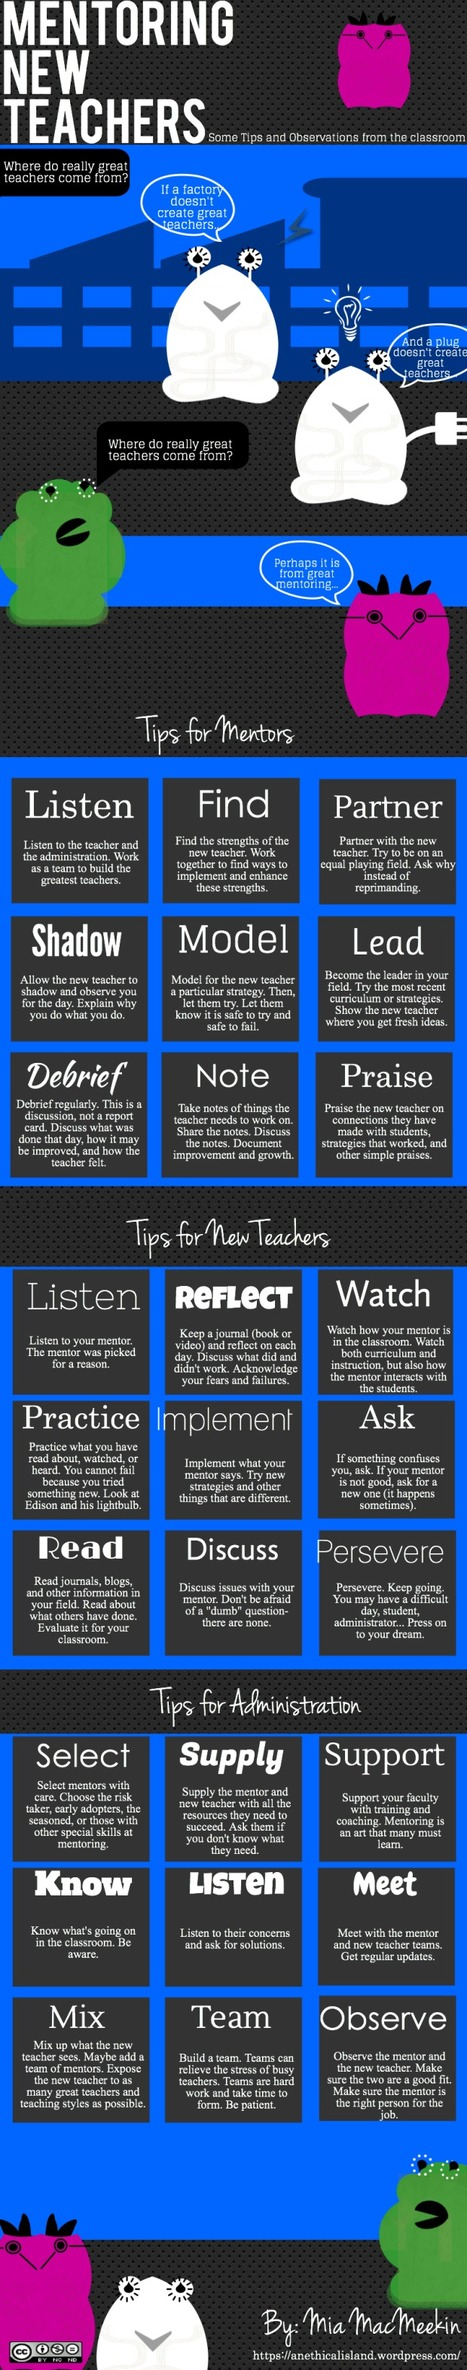 27 Tips For Mentoring New Teachers [Infographic] | Leadership, Innovation, and Creativity | Scoop.it